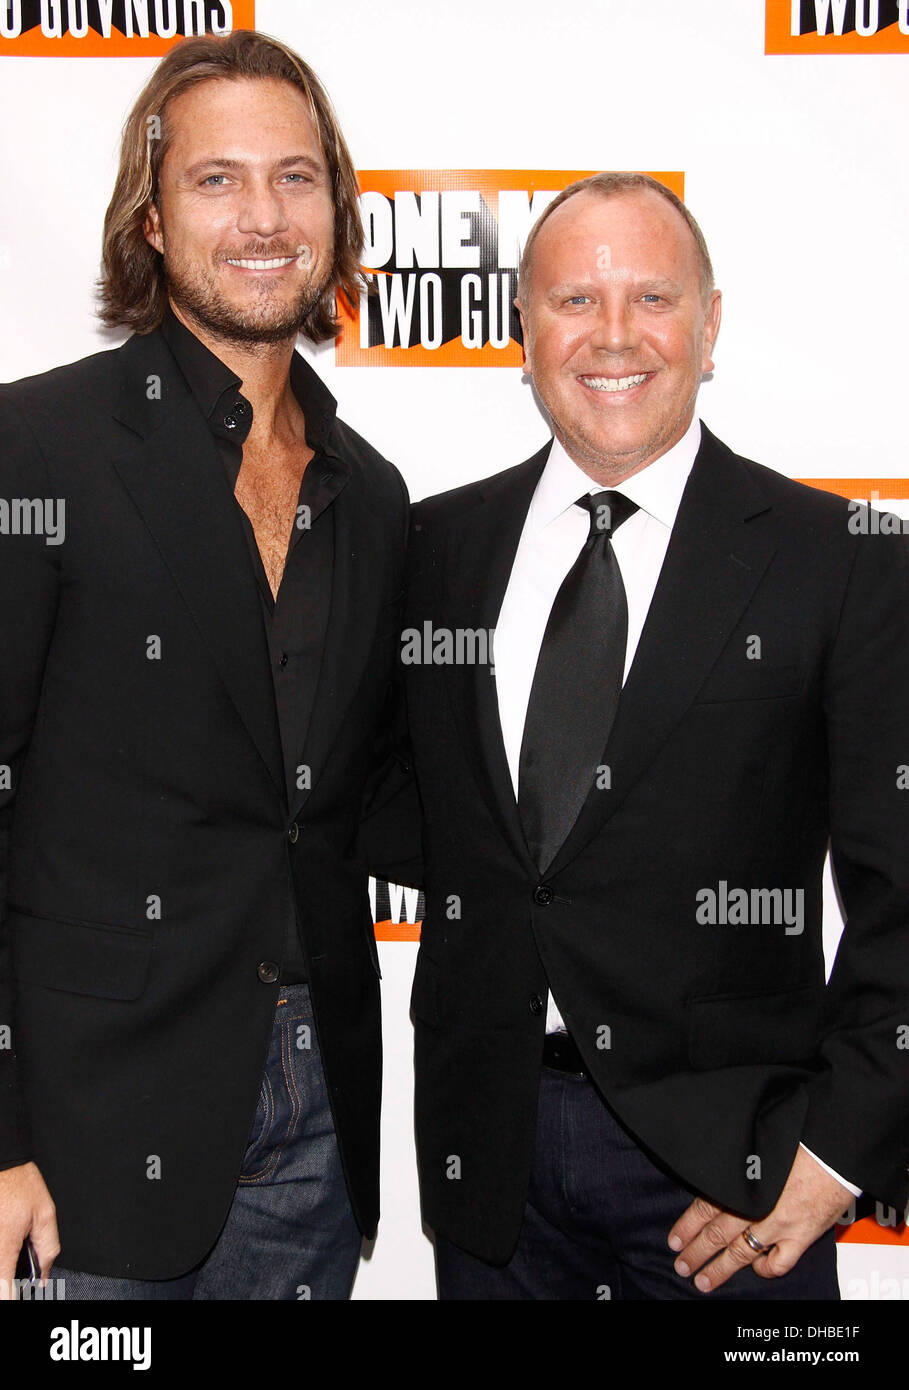 14 Celebrity Gay Couples With Big Age Differences.